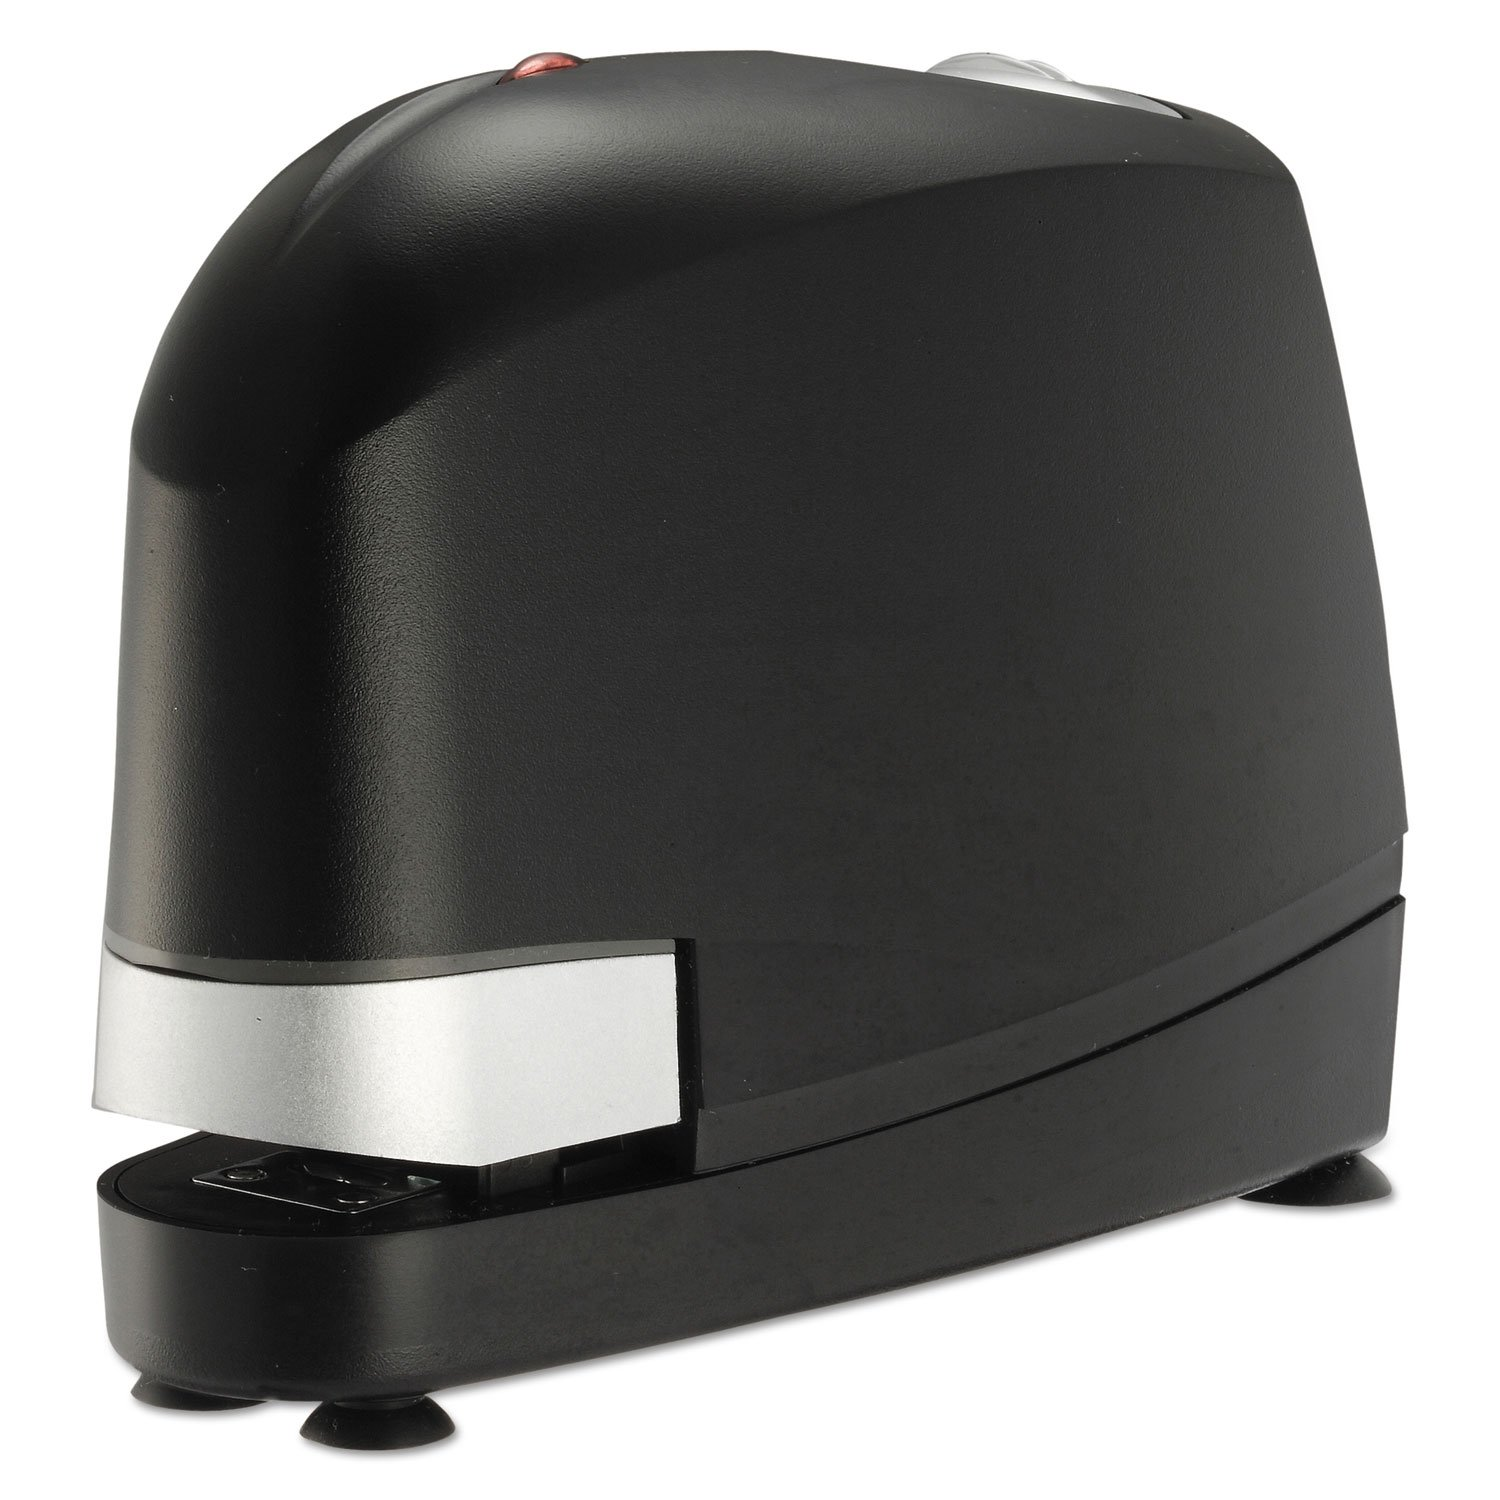 BOSB8EVALUE - B8 Impulse 45 Electric Stapler by Bostitch Office (Image #1)